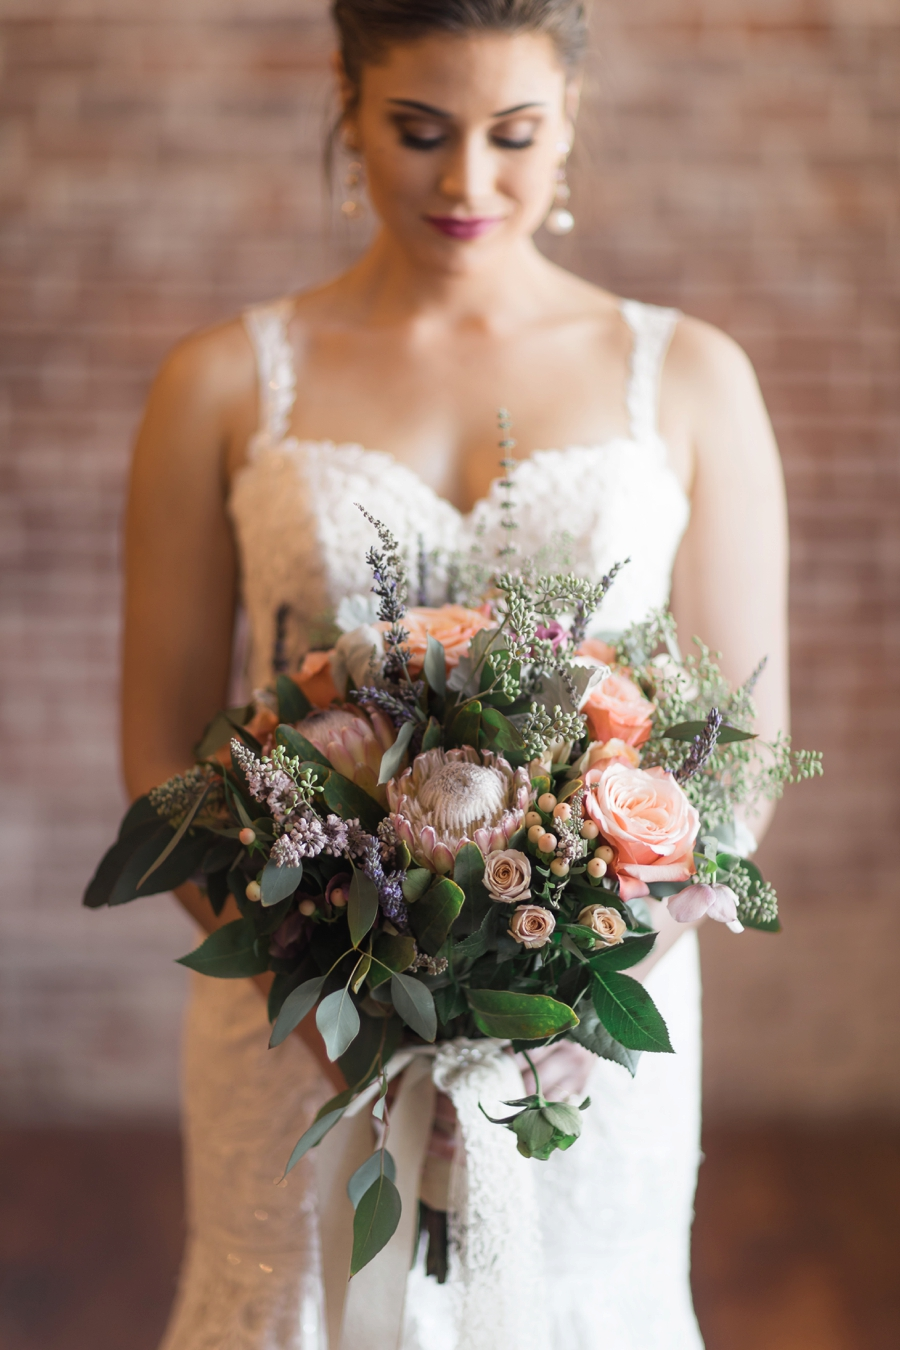 Whimsical & Romantic Pastel Wedding Ideas via TheELD.com